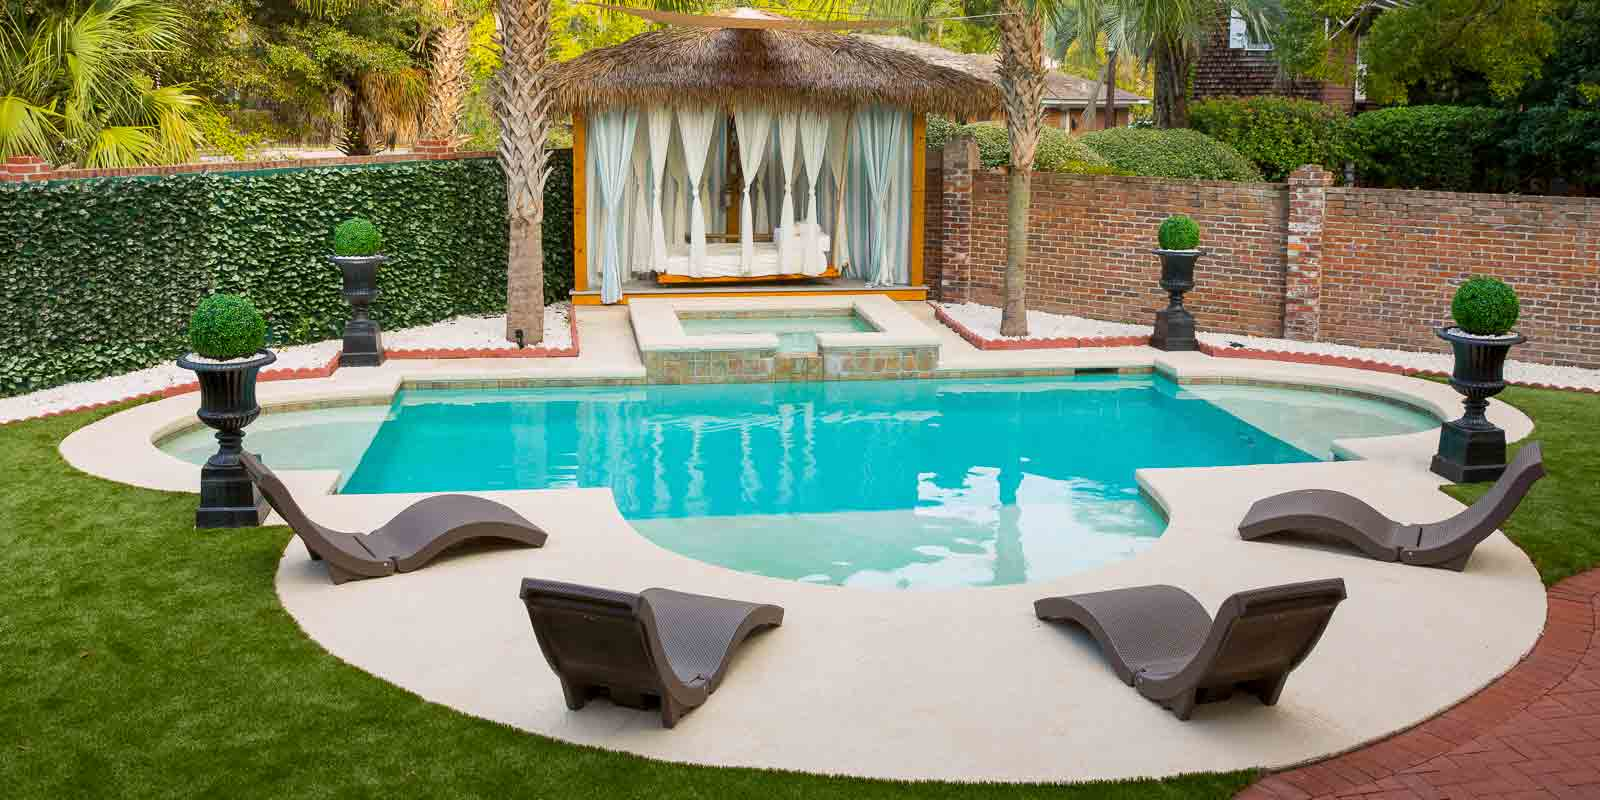 Exterior Architechture photograpy of swimming pool